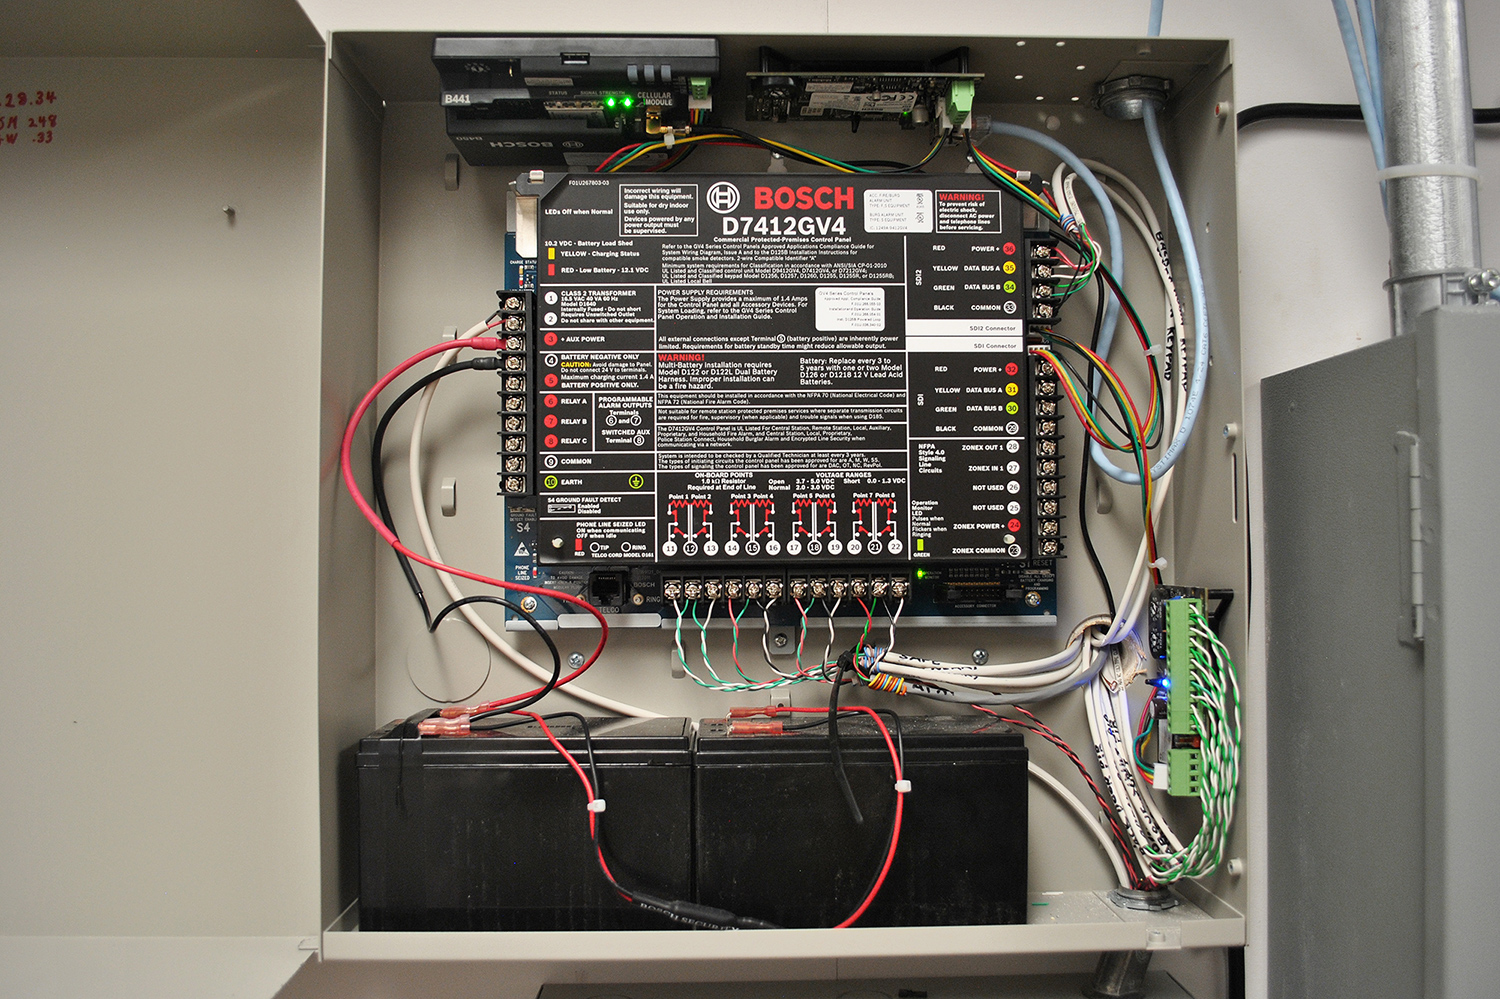 hight resolution of alarm panel wiring today wiring diagram update fire alarm device wiring alarm panel wiring